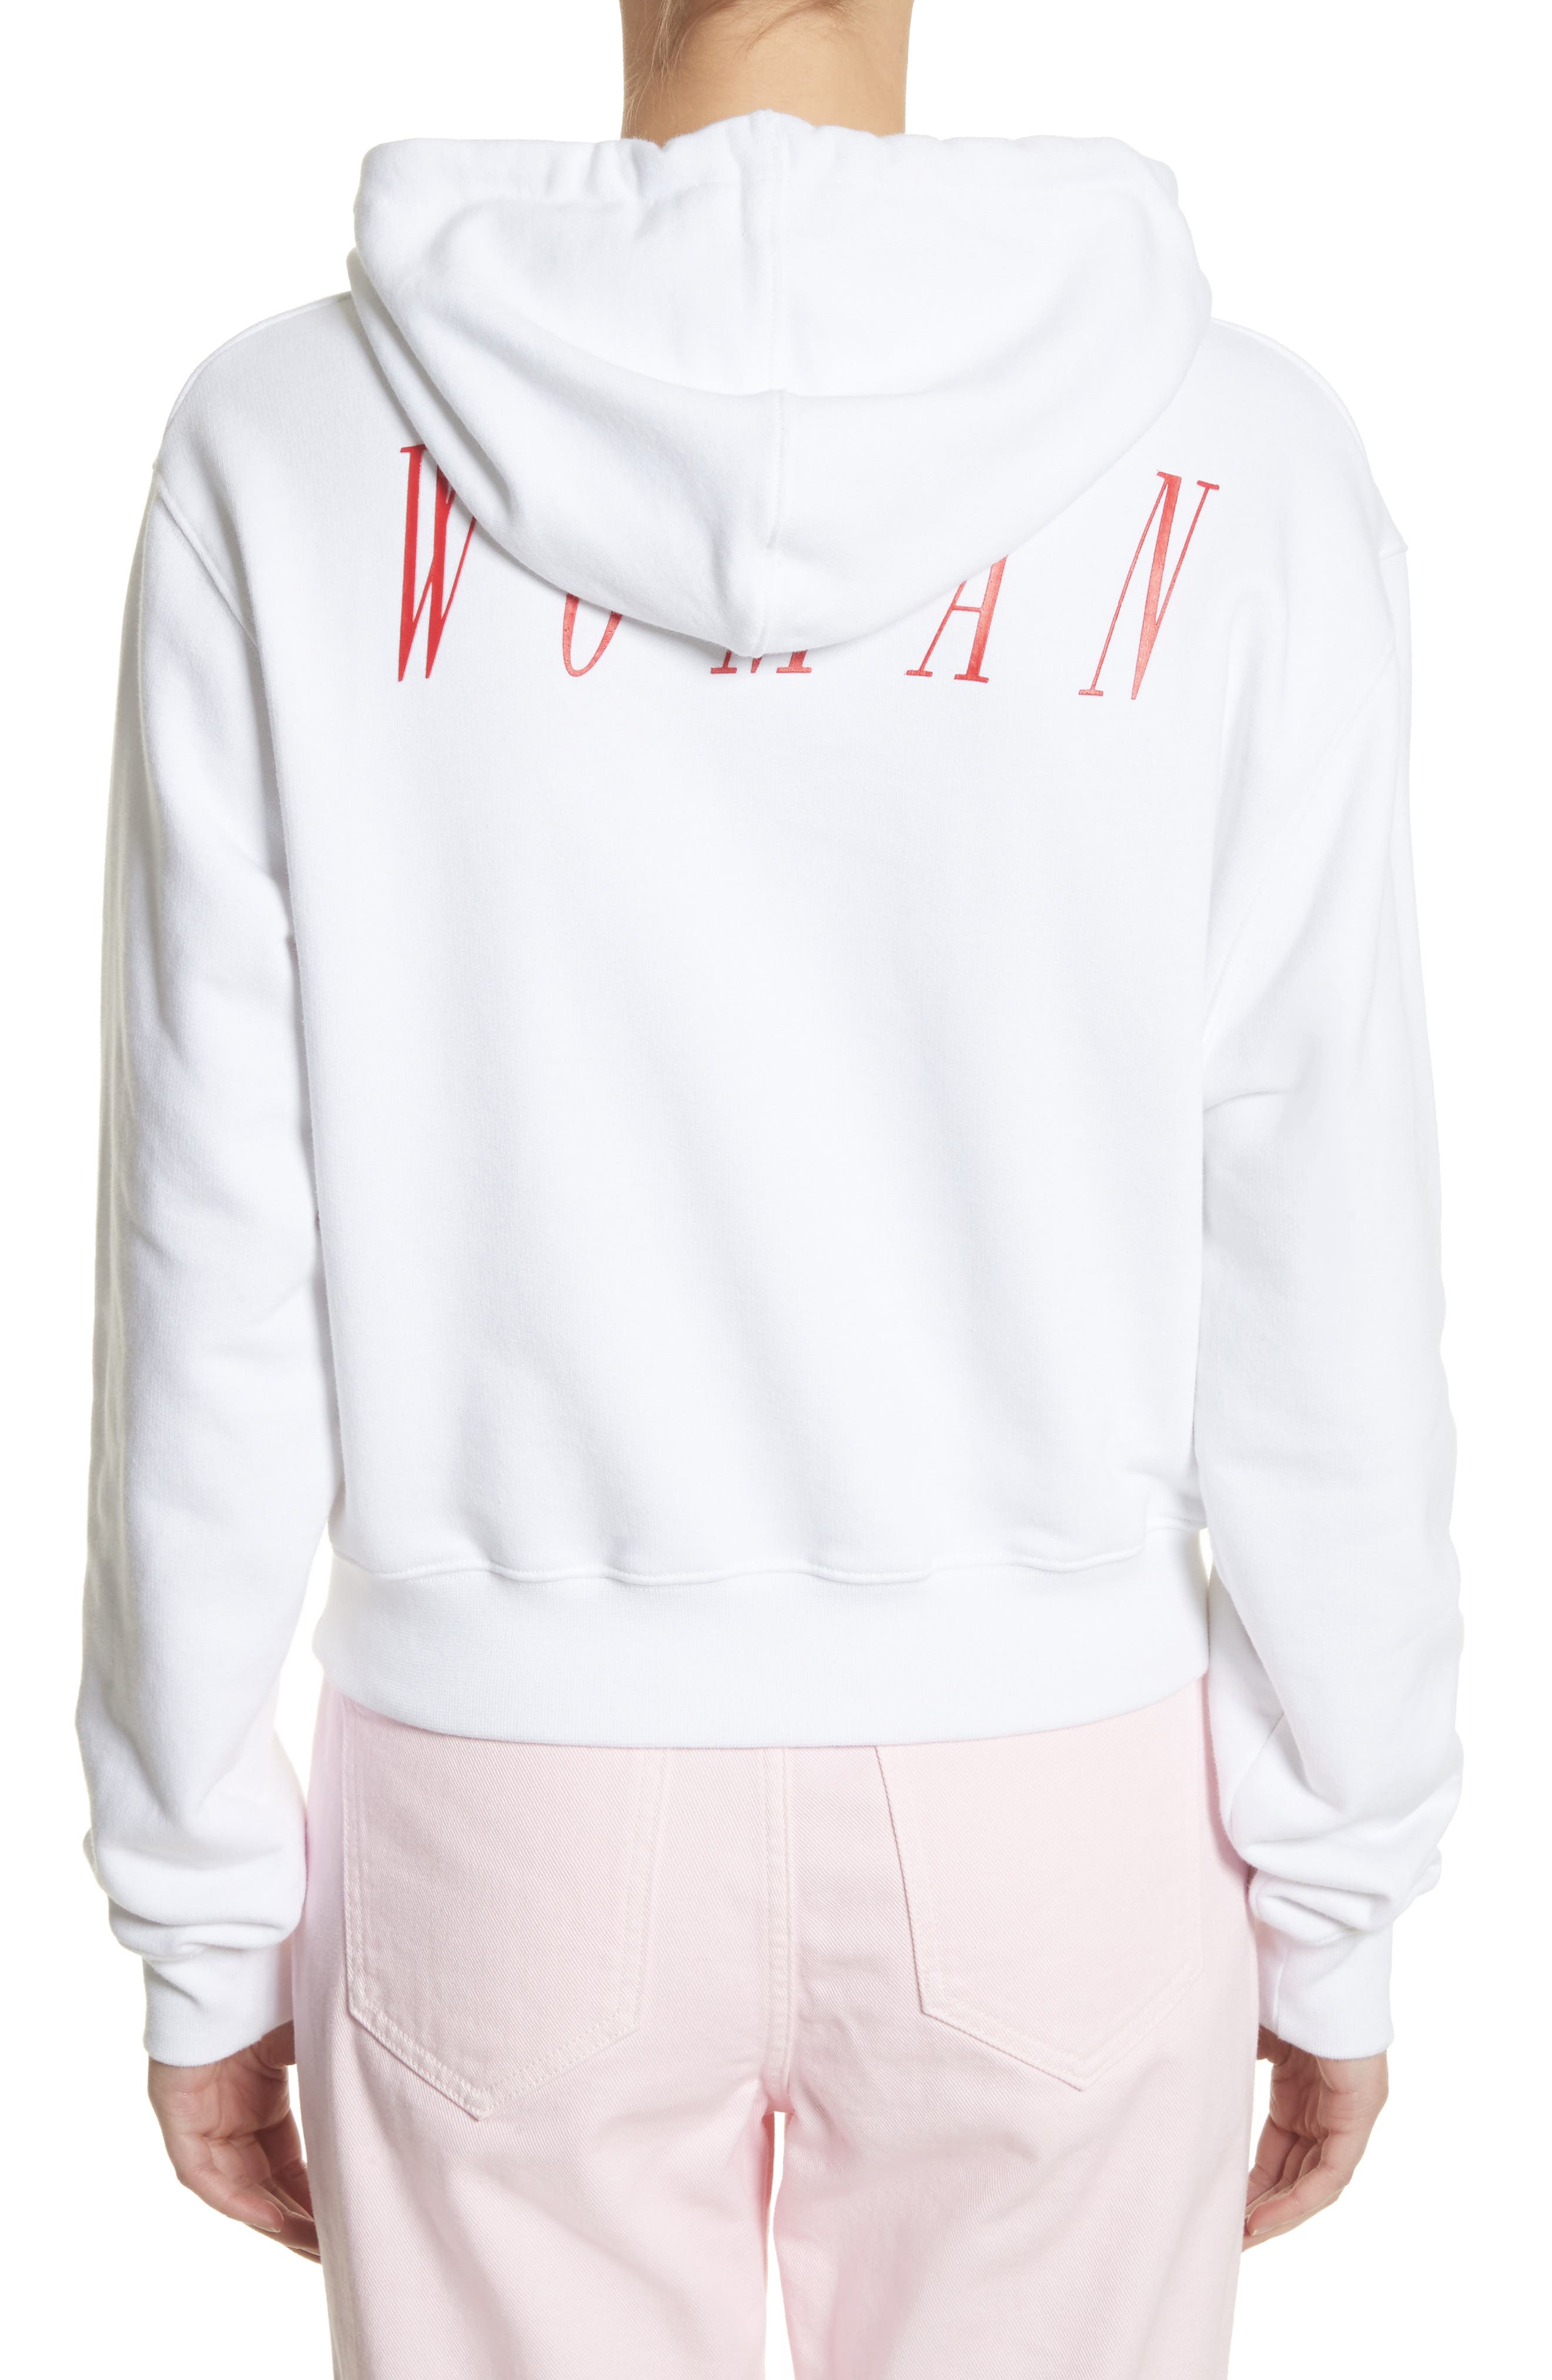 OFFF Crop Hoodie,                             Alternate thumbnail 3, color,                             White Red